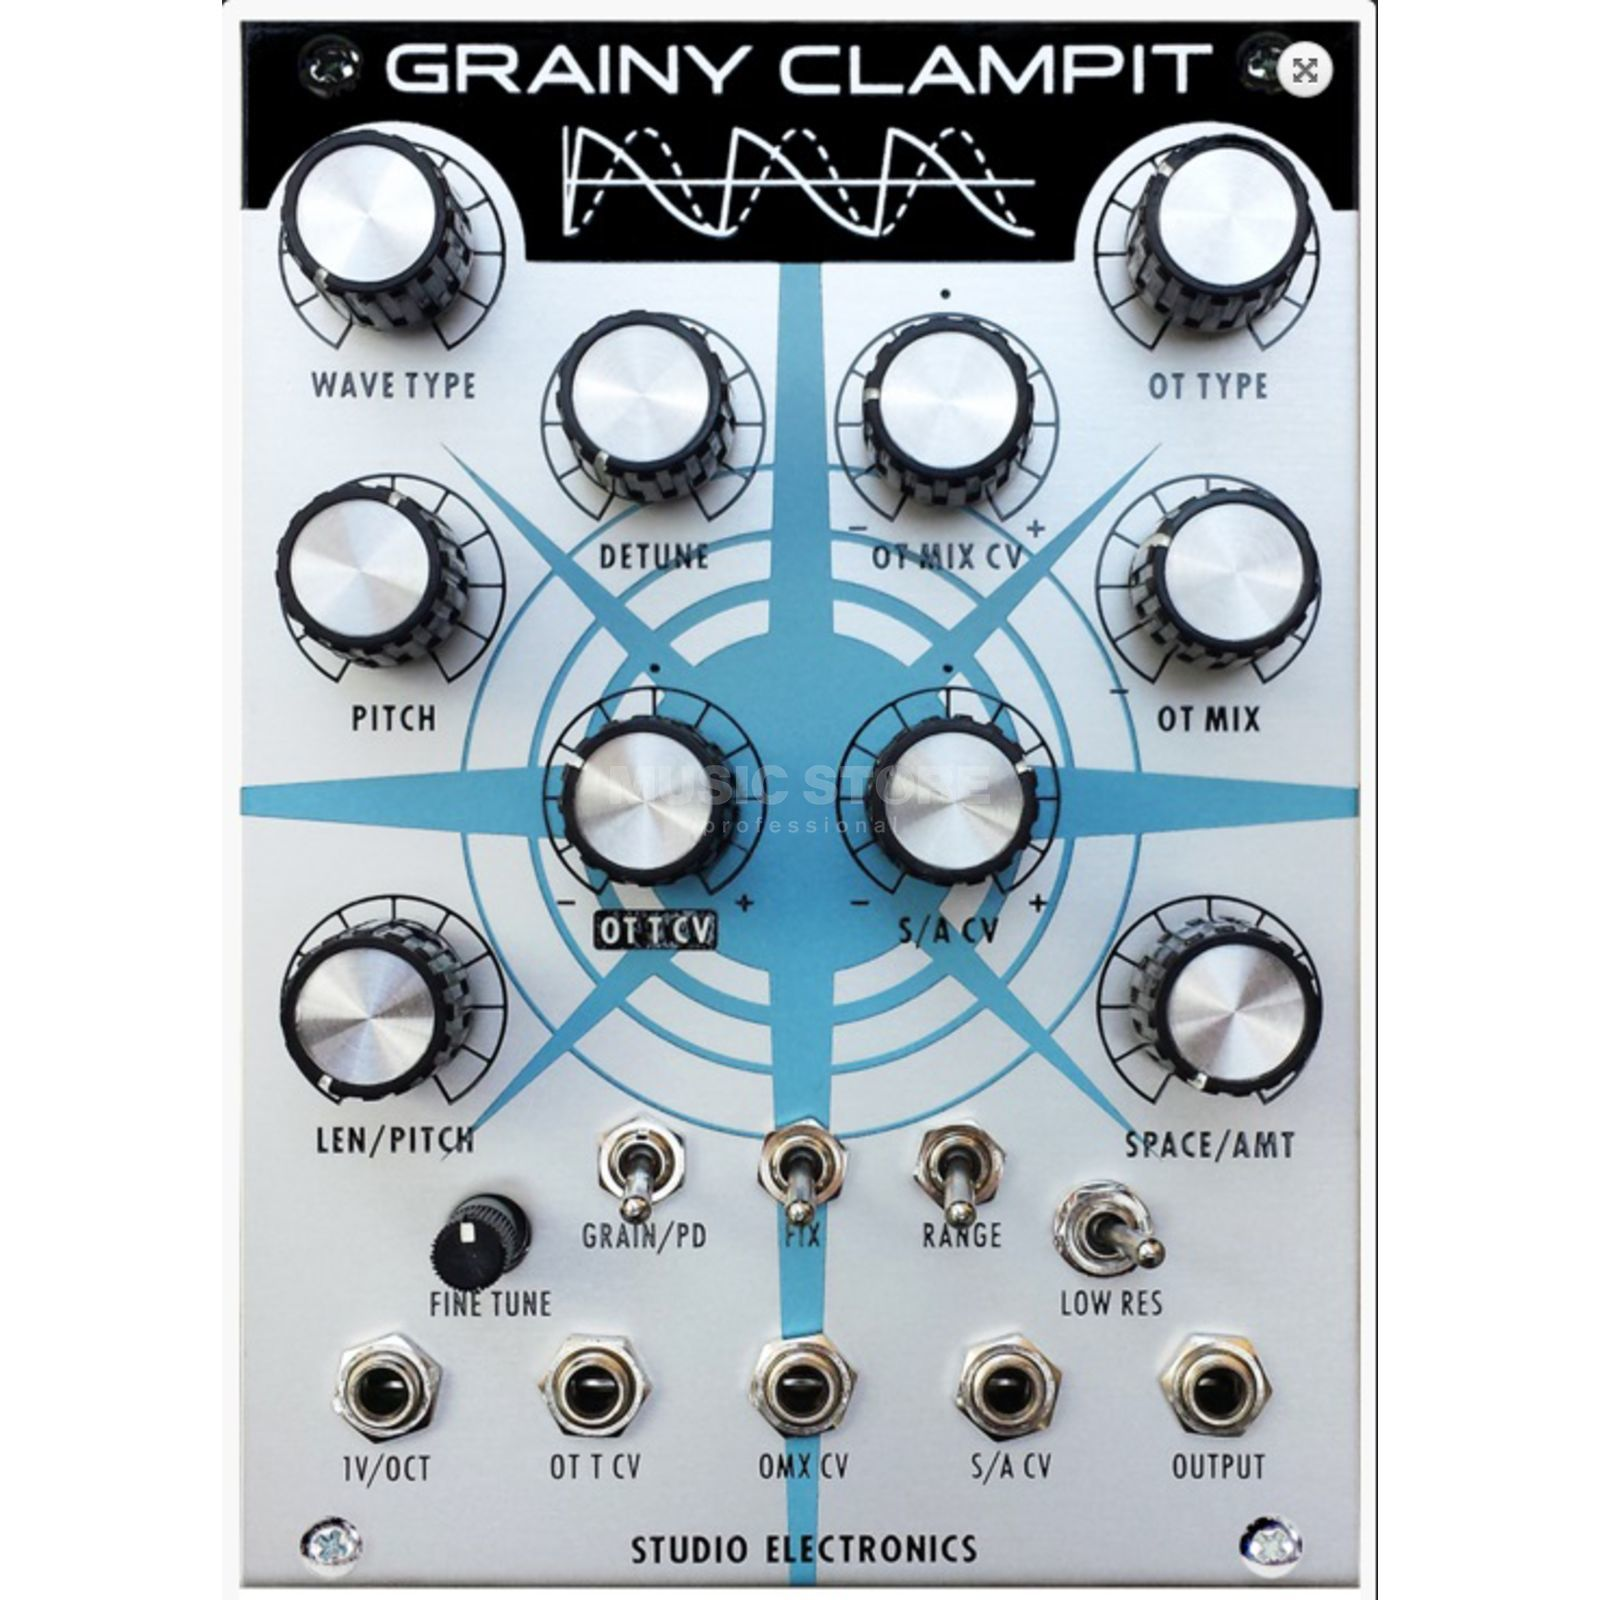 Studio Electronics Grainy Clamp it Oscillator Graincloud Zdjęcie produktu